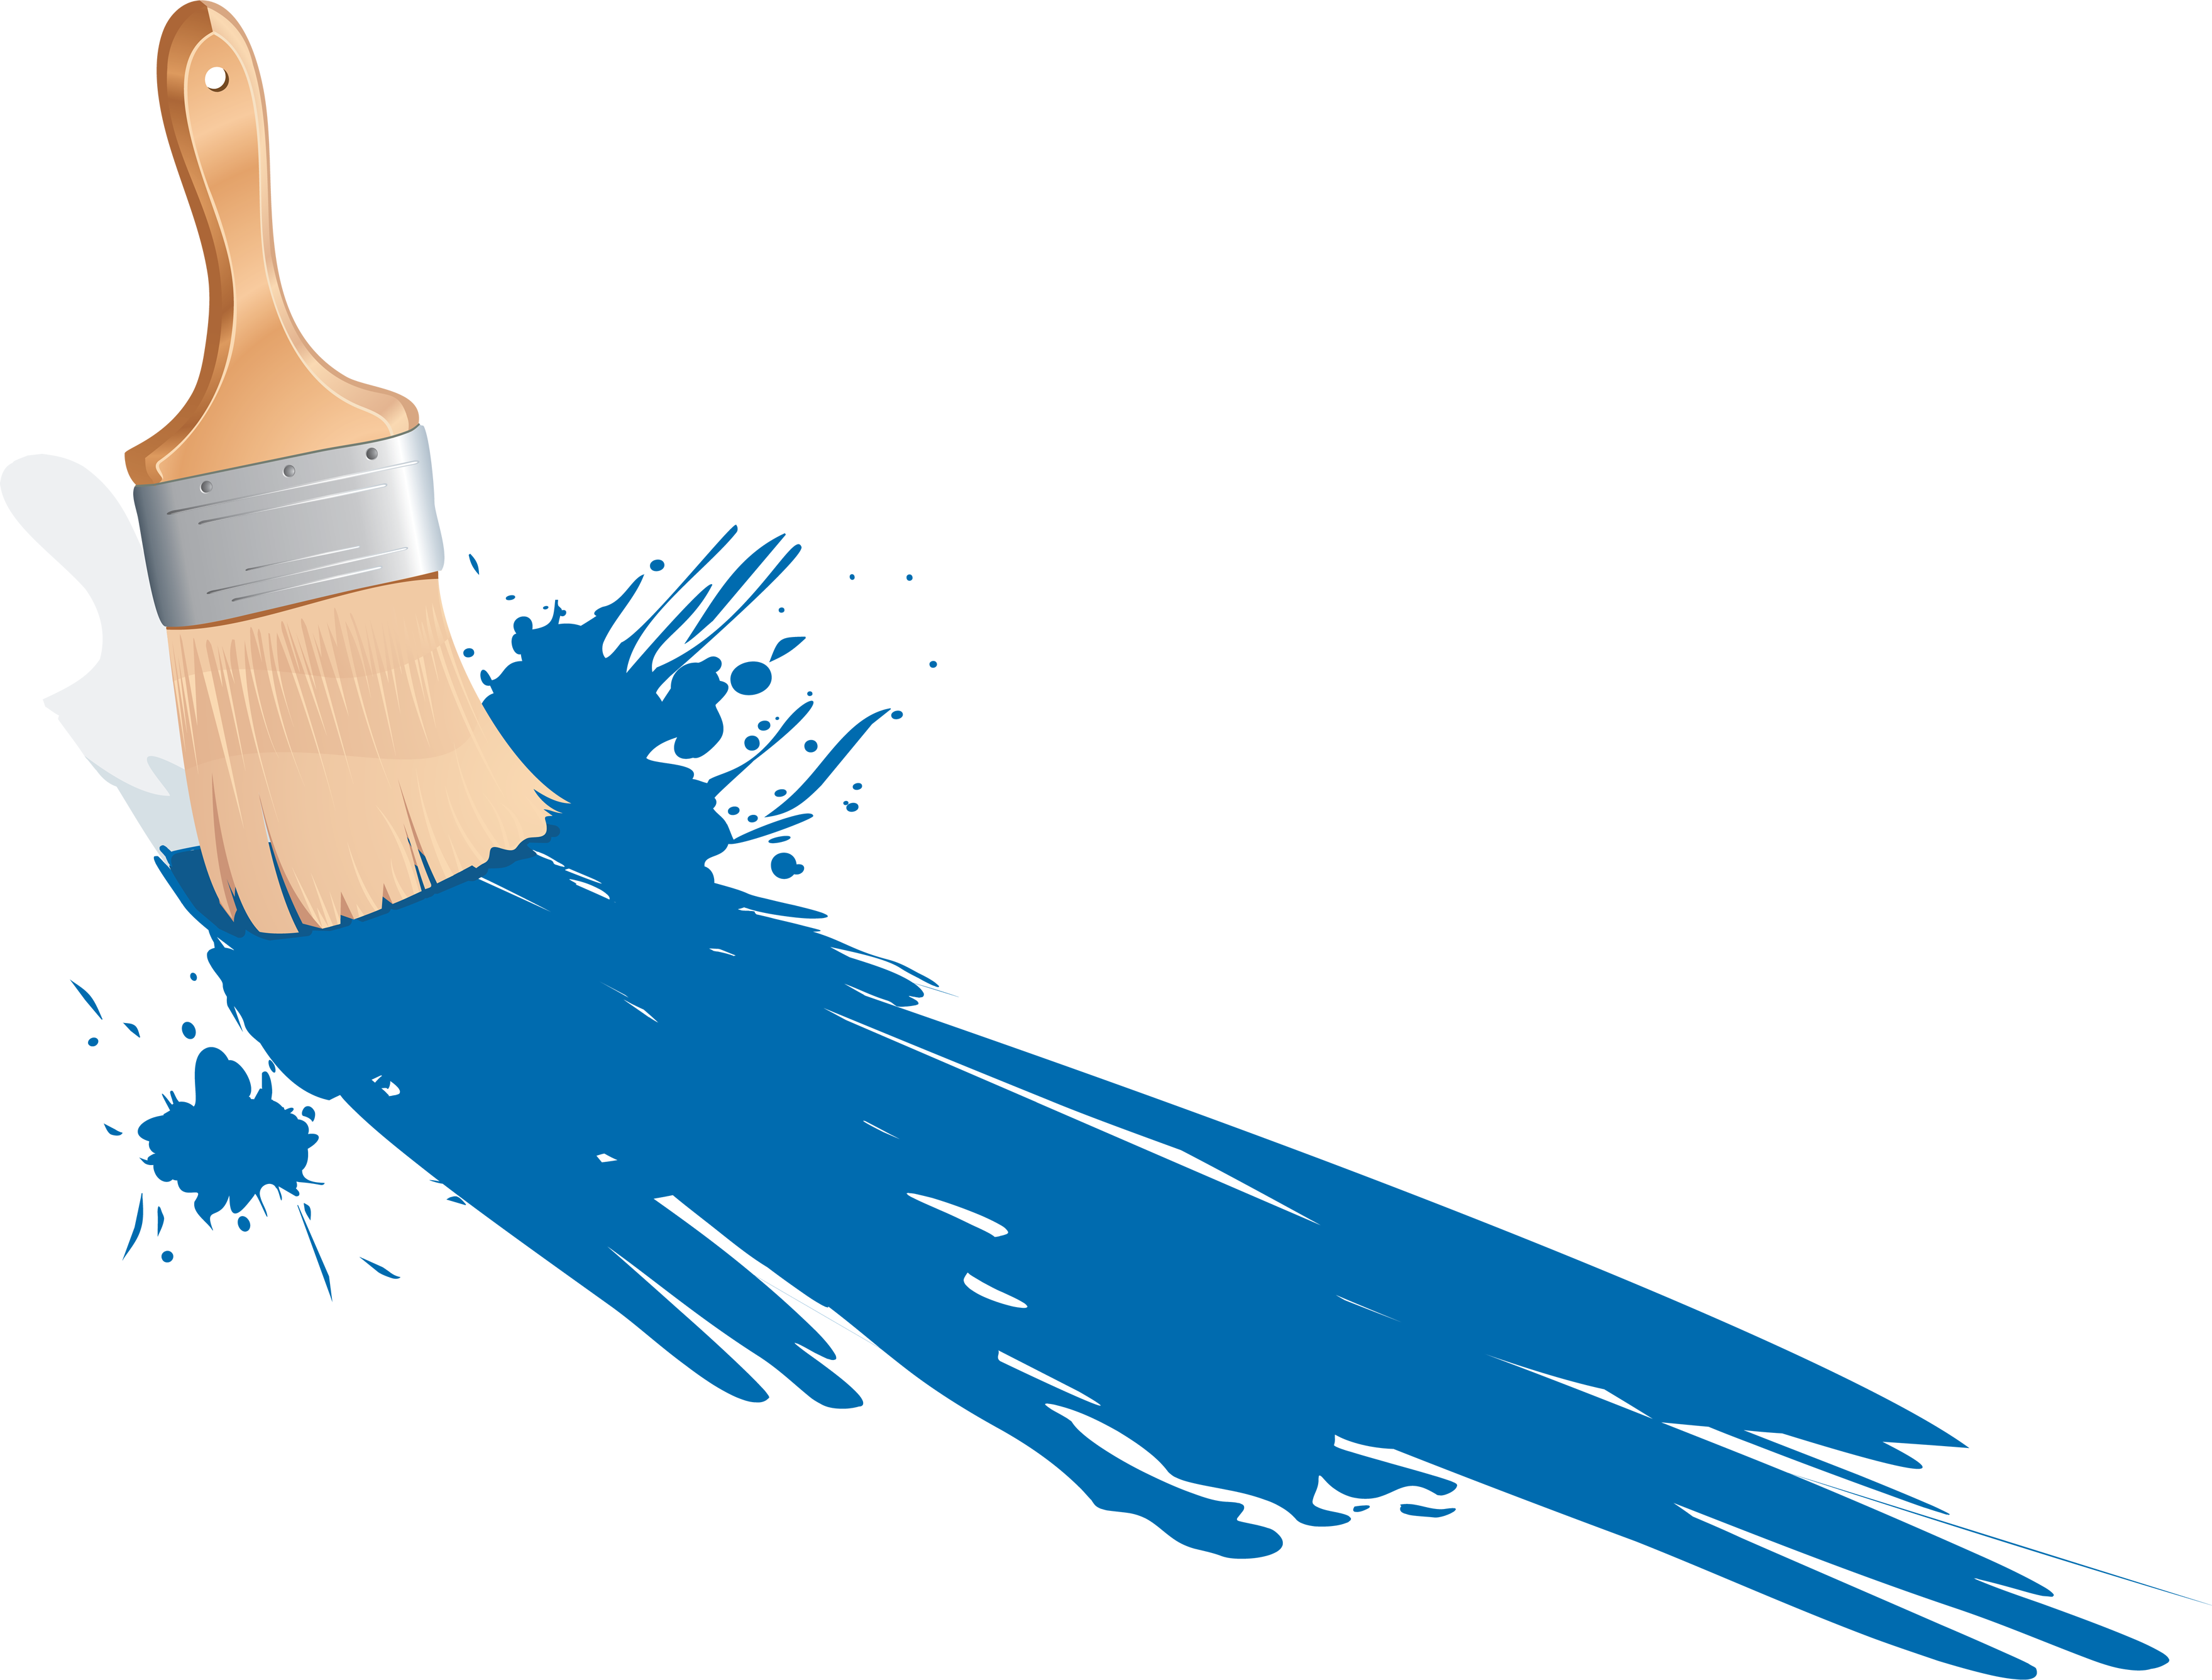 Paint Brush Png Image PNG Image - Painting PNG HD